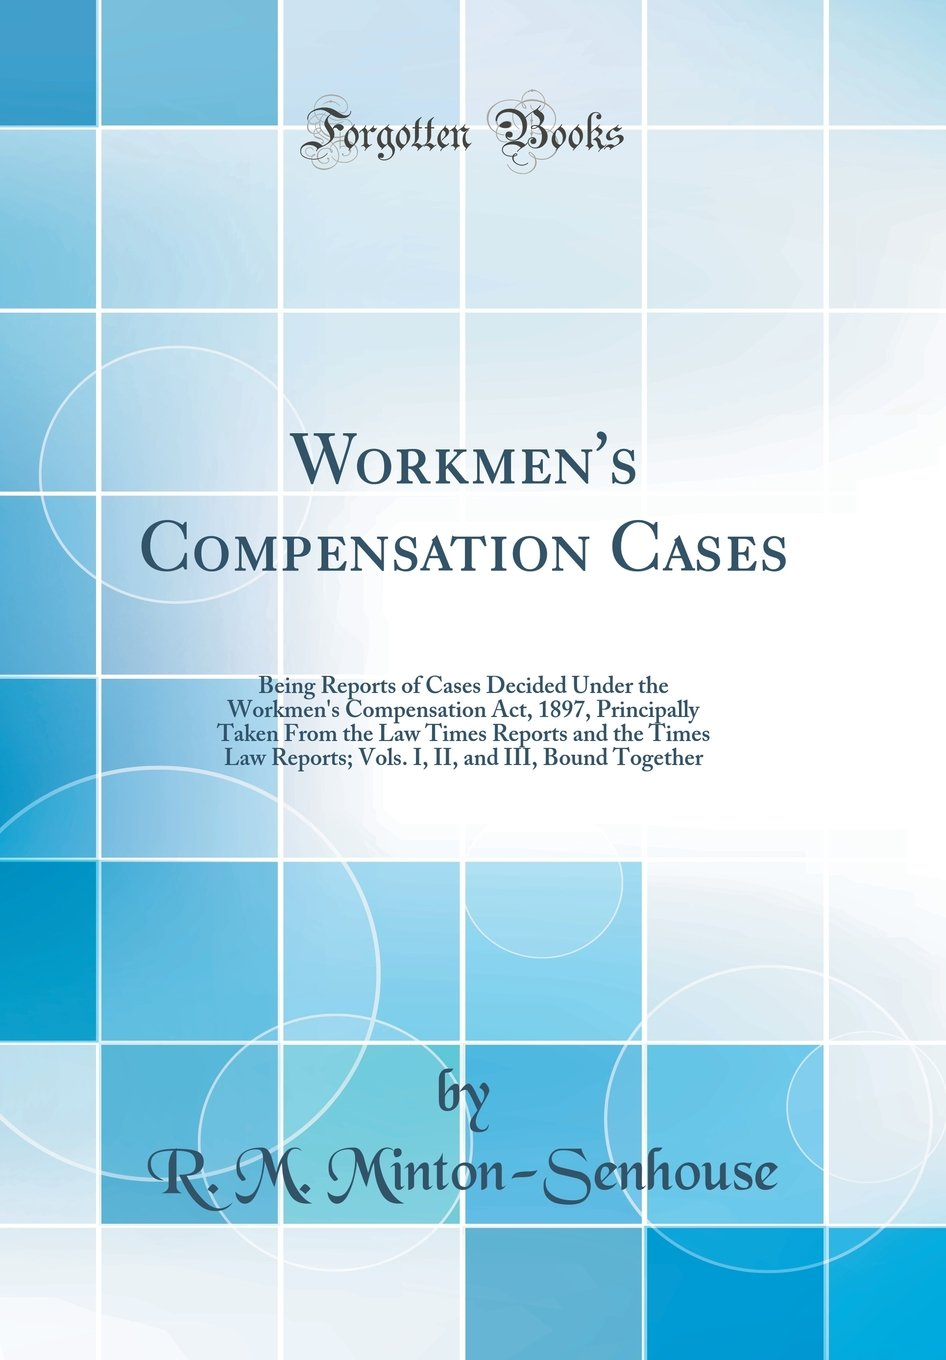 Workmen's Compensation Cases: Being Reports of Cases Decided Under the Workmen's Compensation ACT, 1897, Principally Taken from the Law Times Reports ... II, and III, Bound Together (Classic Reprint) Text fb2 ebook